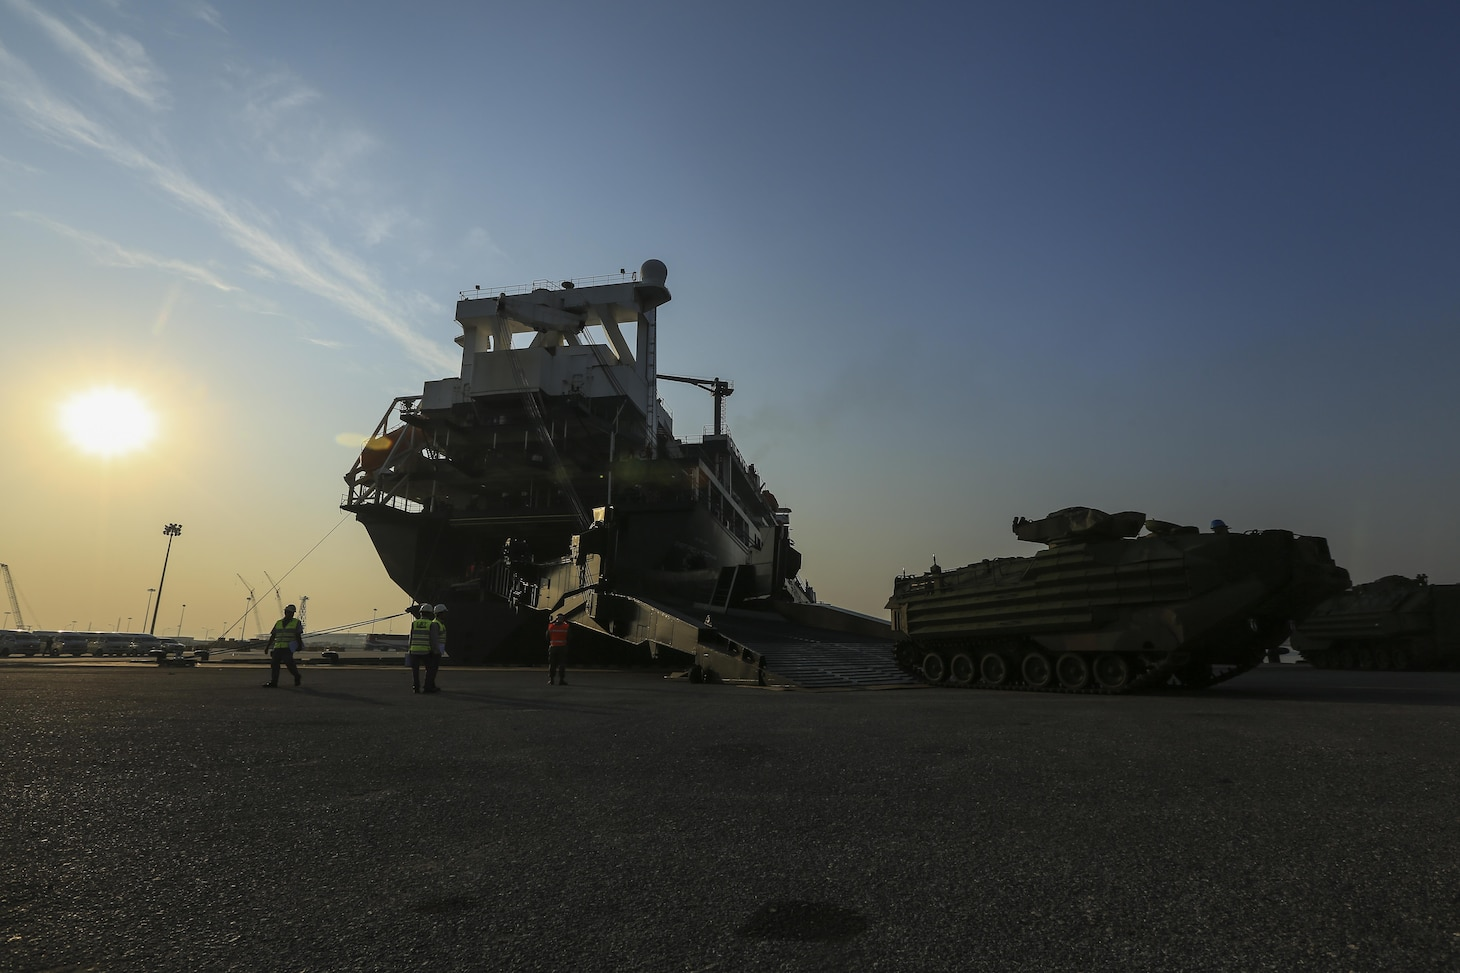 U.S. Marines with Combat Logistics Battalion 4 offload an Assault Amphibious Vehicle from the USNS Gunnery Sgt. Fred W. Stockham, during exercise Cobra Gold, at Laem Chabang International Terminal, Thailand, Feb. 11, 2017. Cobra Gold, in its 36th iteration, is an important element of the United States' and all other participating nations' regional military to military engagement efforts. (U.S. Marine Corps photo by Cpl. Wesley Timm)